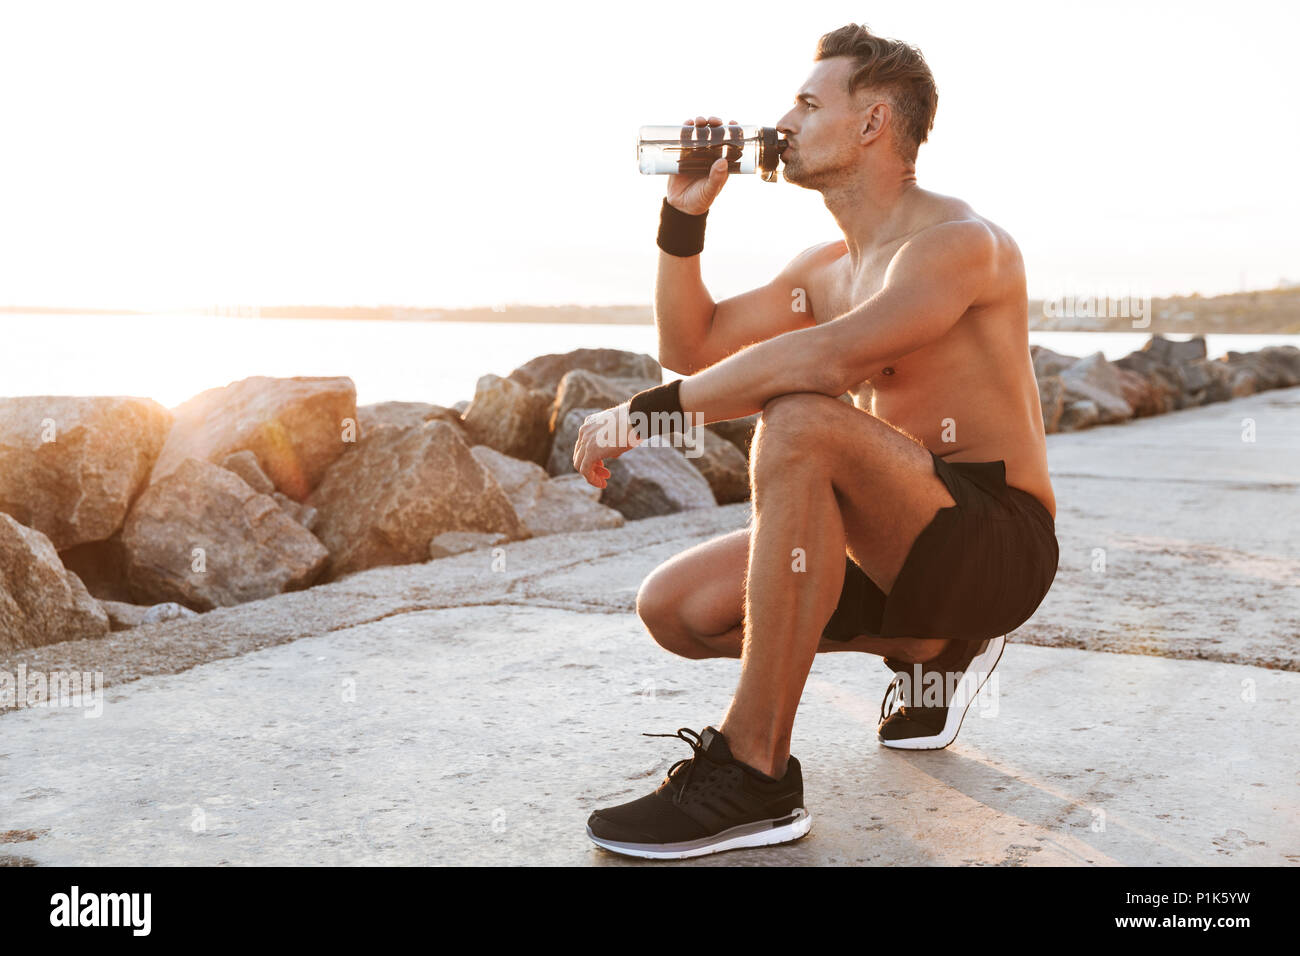 Portrait of a fit shirtless sportsman resting after jogging and drinking water outdoors - Stock Image